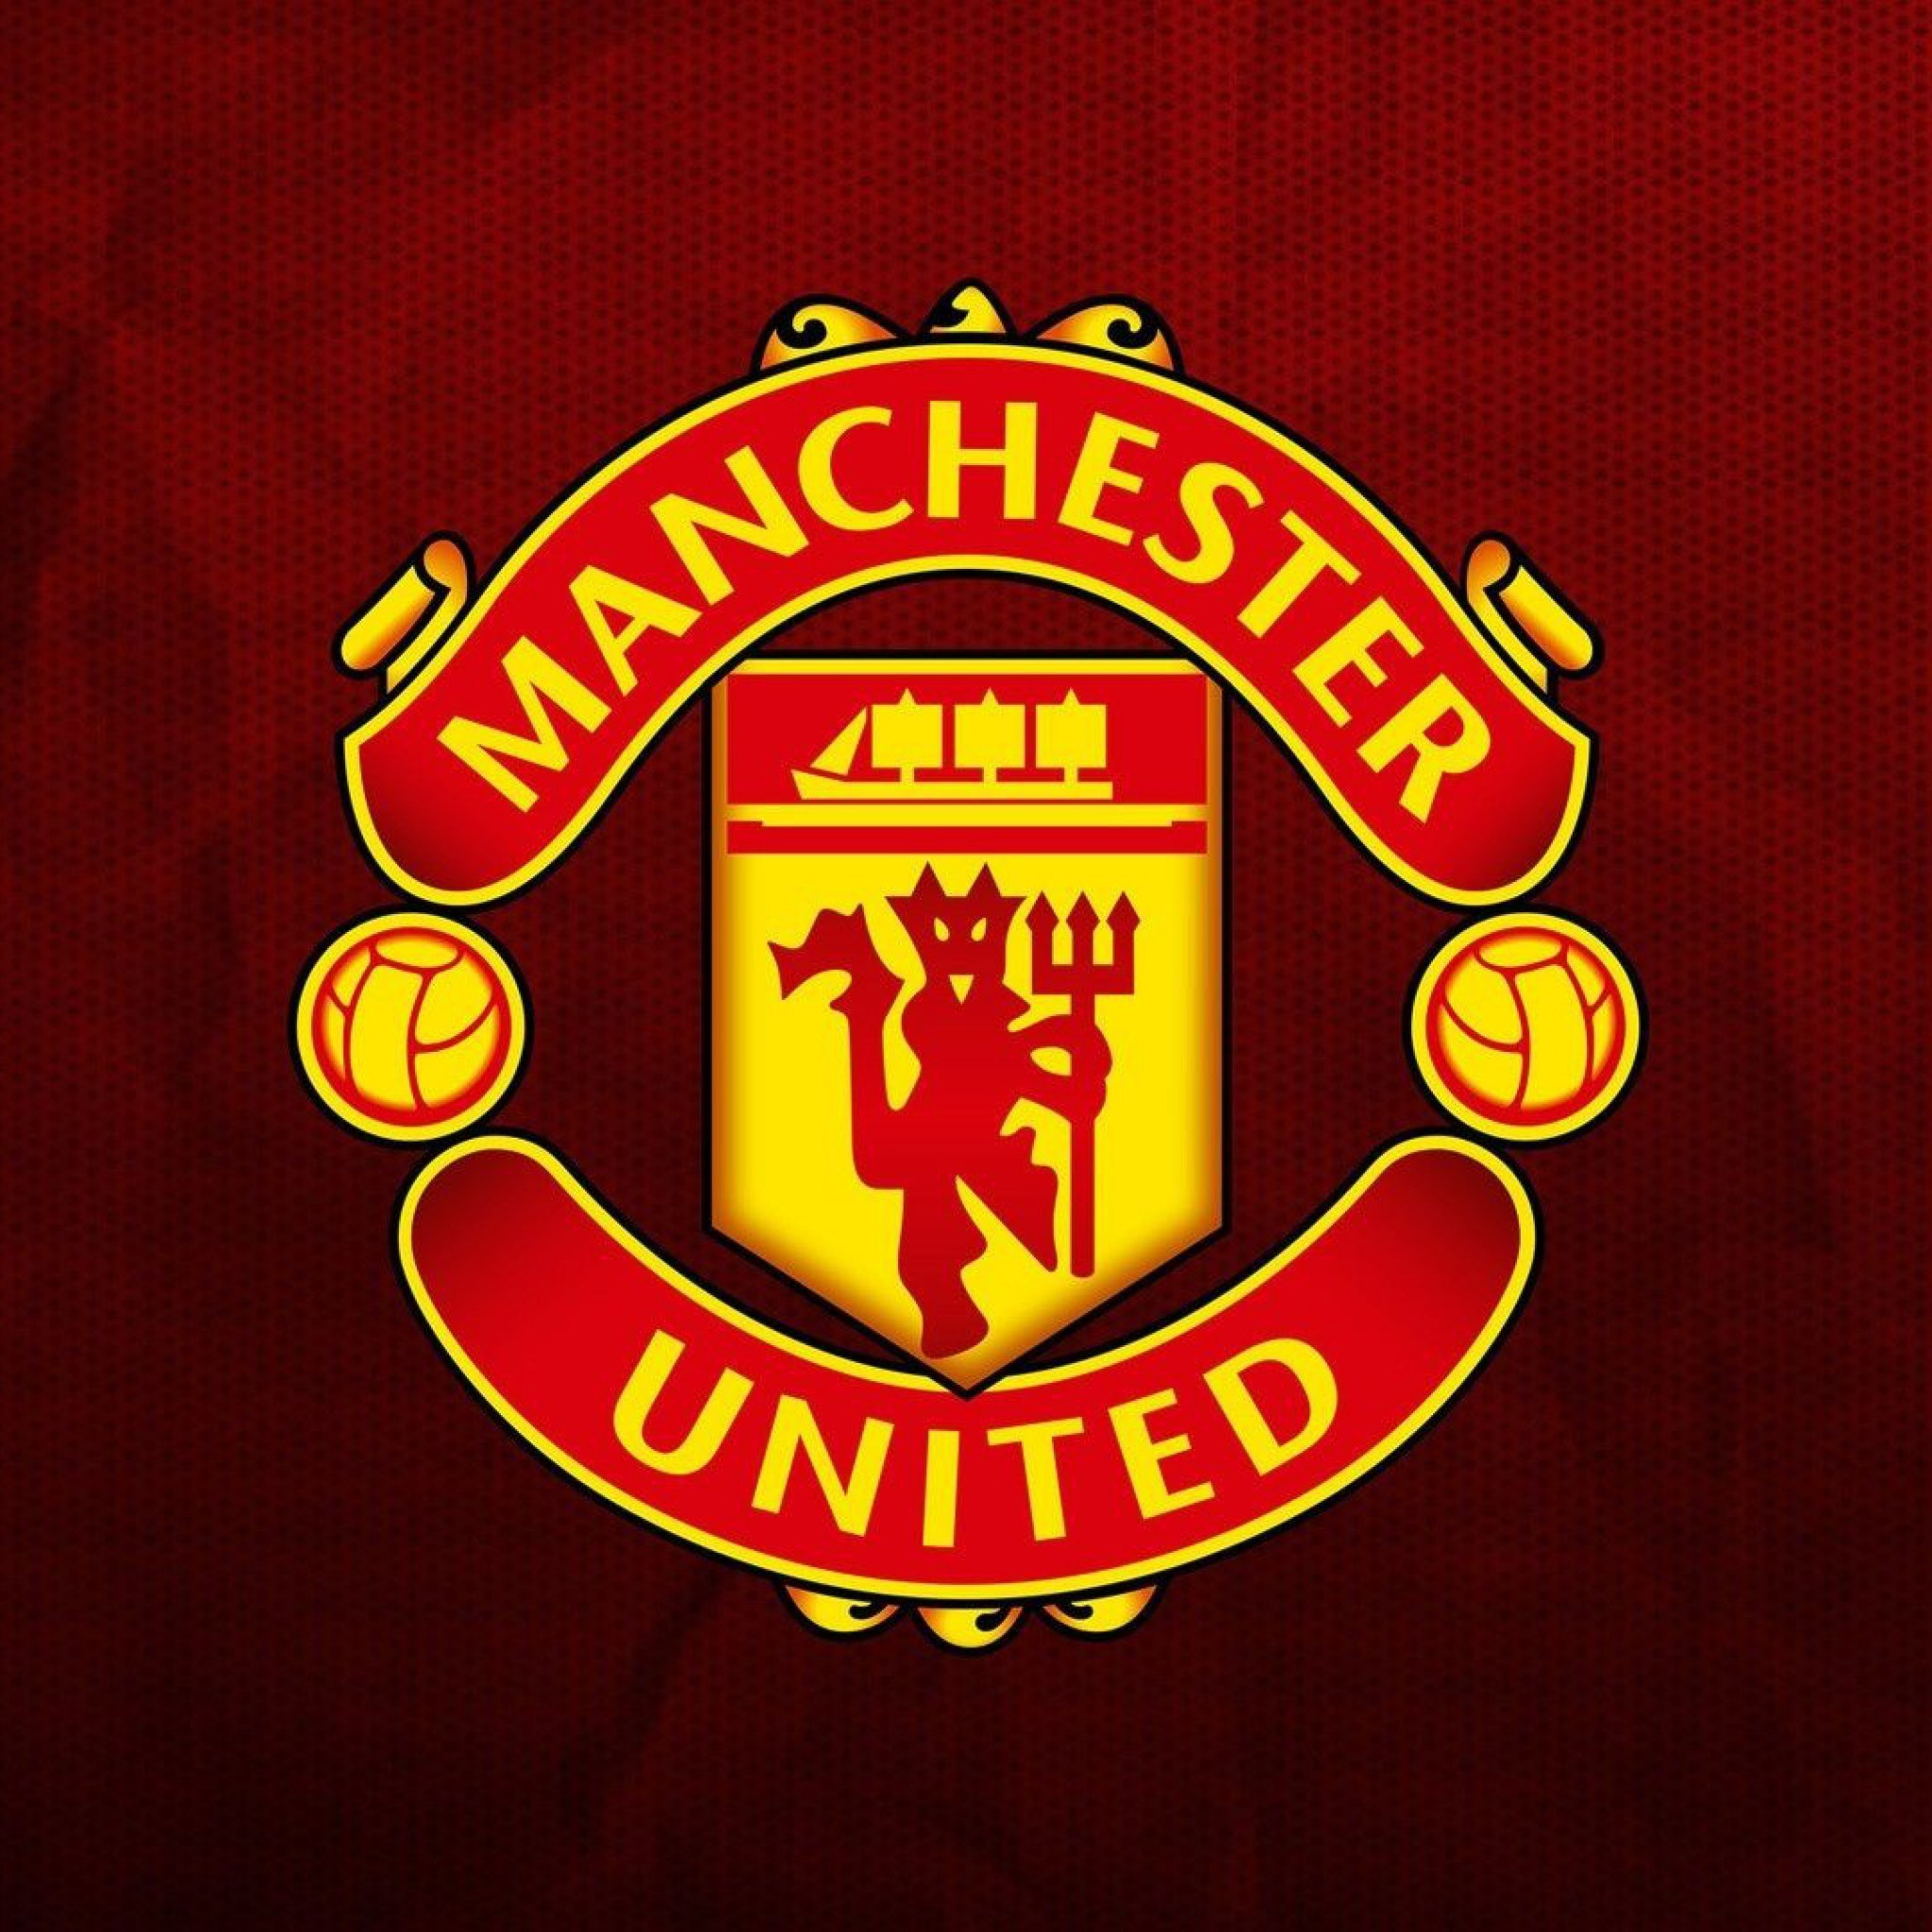 Man Utd Wallpapers 2018 68 images 2048x2048